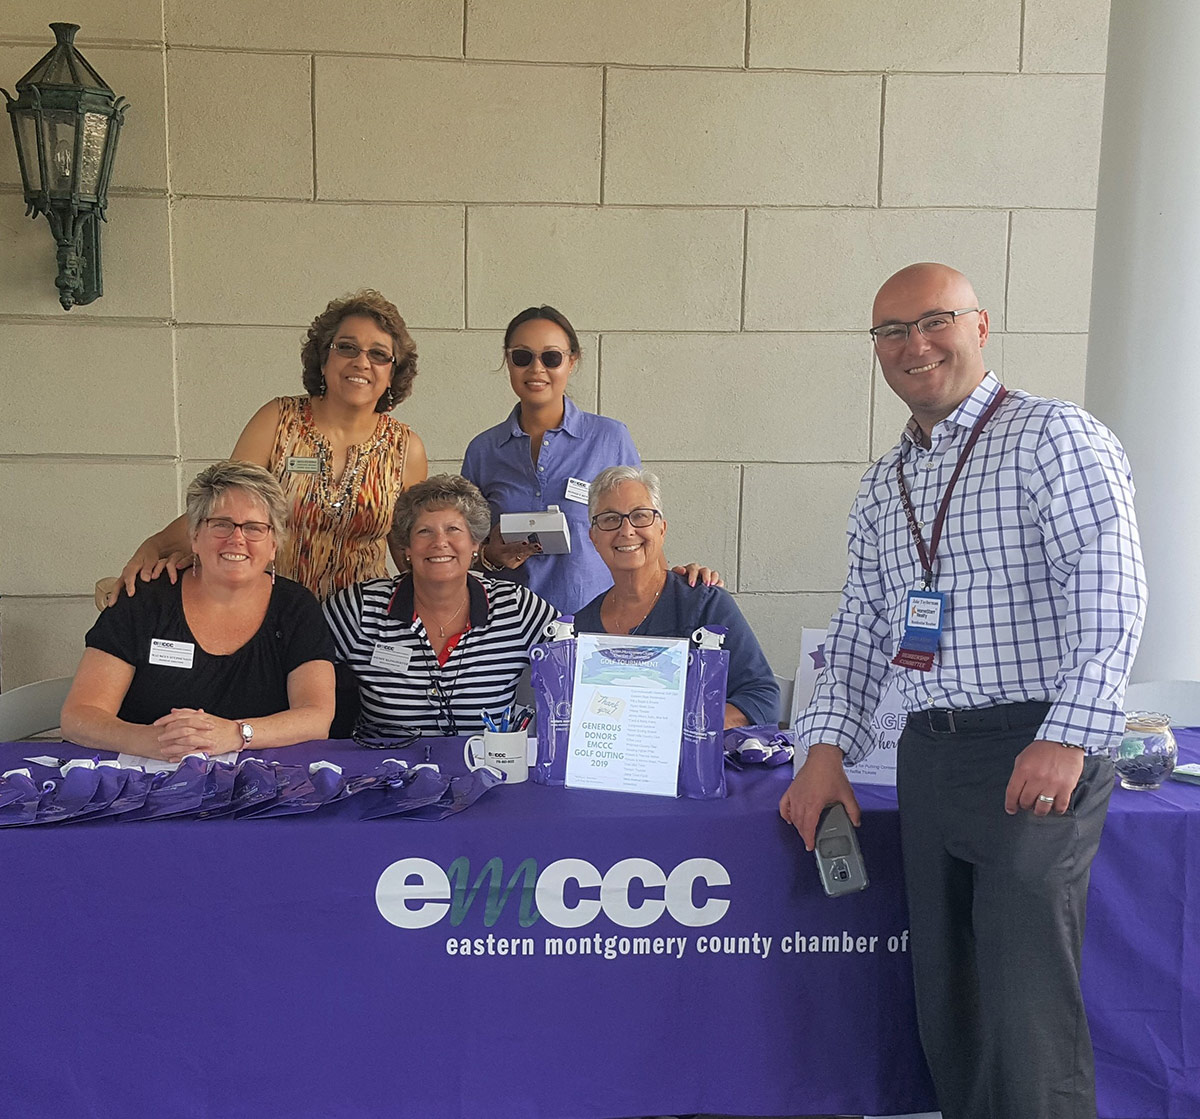 EMCCC volunteers and staff are ready to greet and welcome guests at the first annual Golf outing.